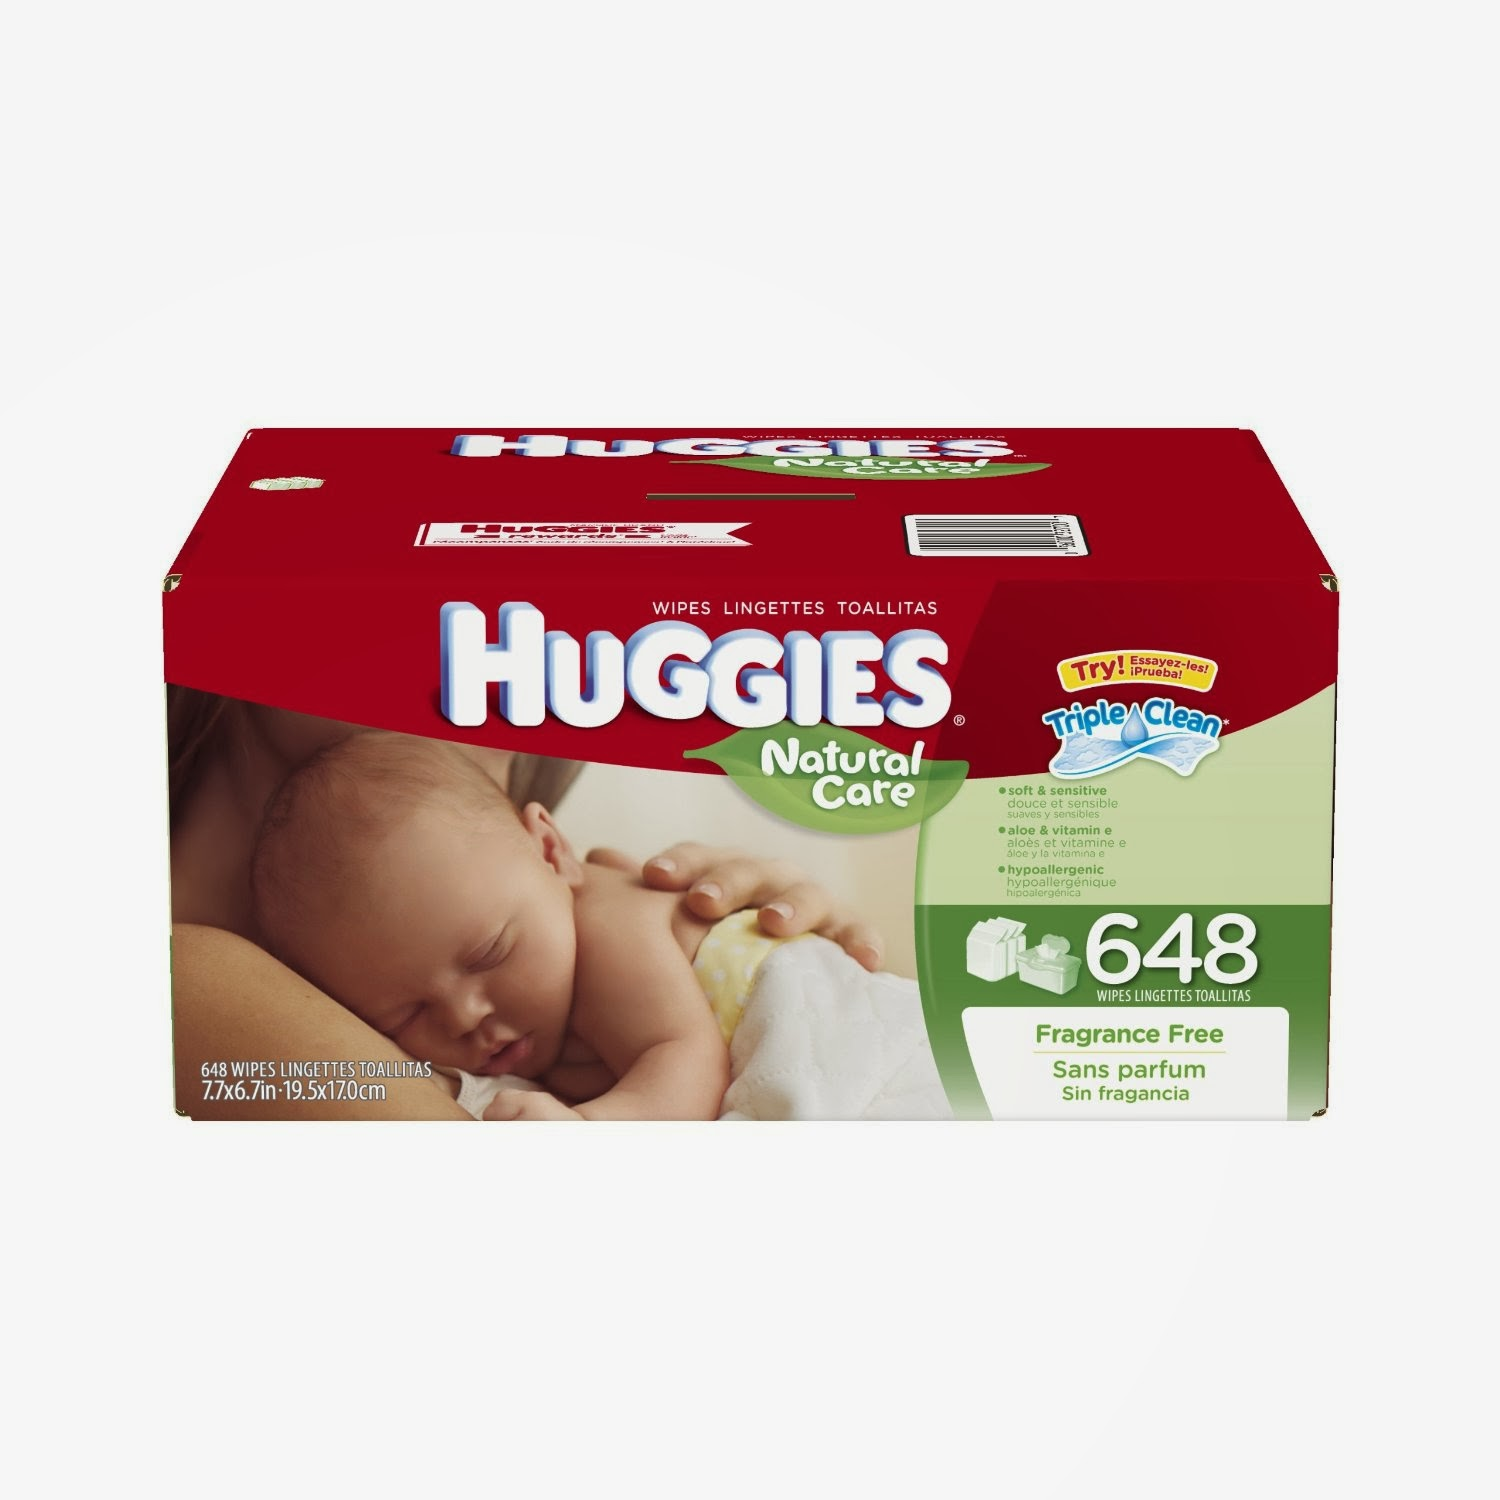 https://www.amazon.com/Huggies-Natural-Fragrance-Refill-Packaging/dp/B0093IY57O/ref=as_li_ss_til?tag=soutsubusavi-20&linkCode=w01&creativeASIN=B0093IY57O